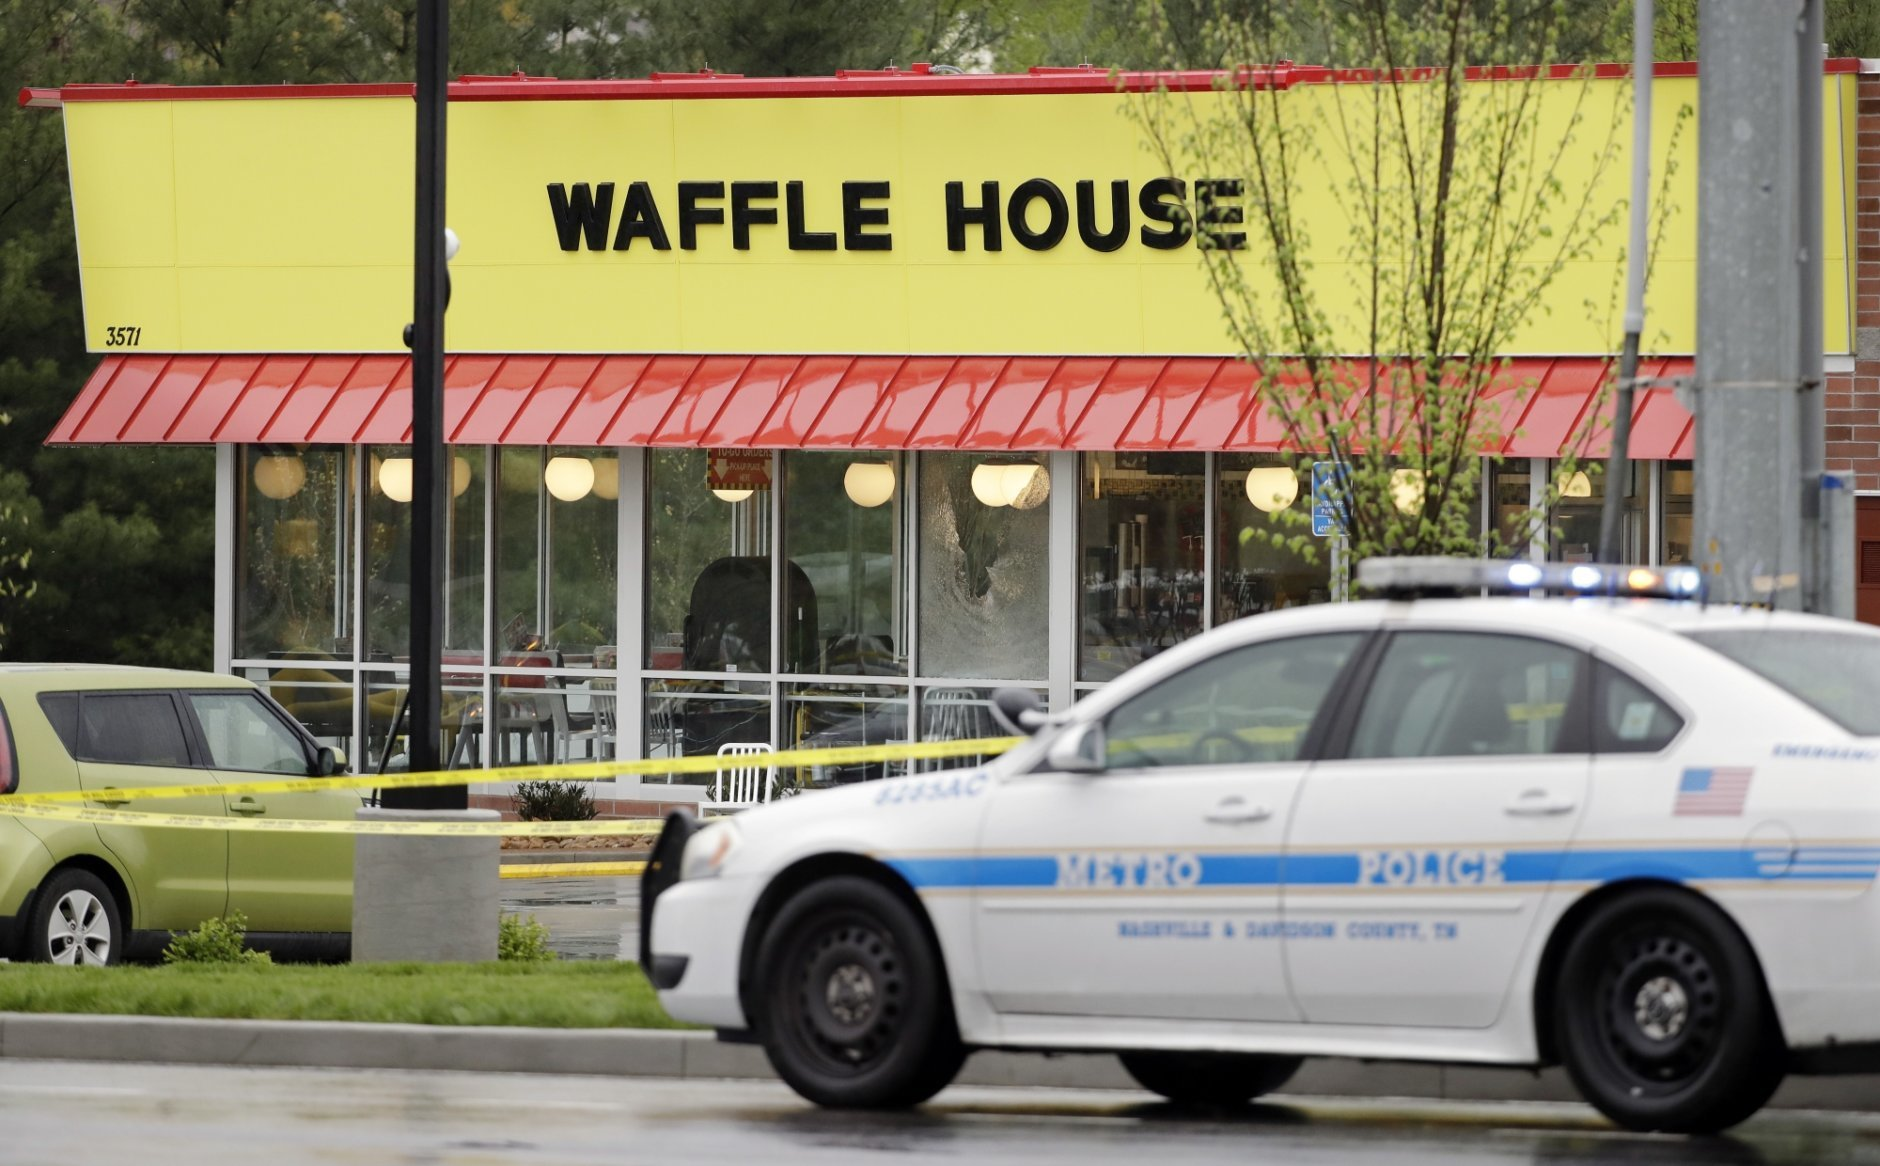 A police car sits in front of a Waffle House restaurant Sunday, April 22, 2018, in Nashville, Tenn. At least four people died after a gunman opened fire at the restaurant early Sunday. (AP Photo/Mark Humphrey)